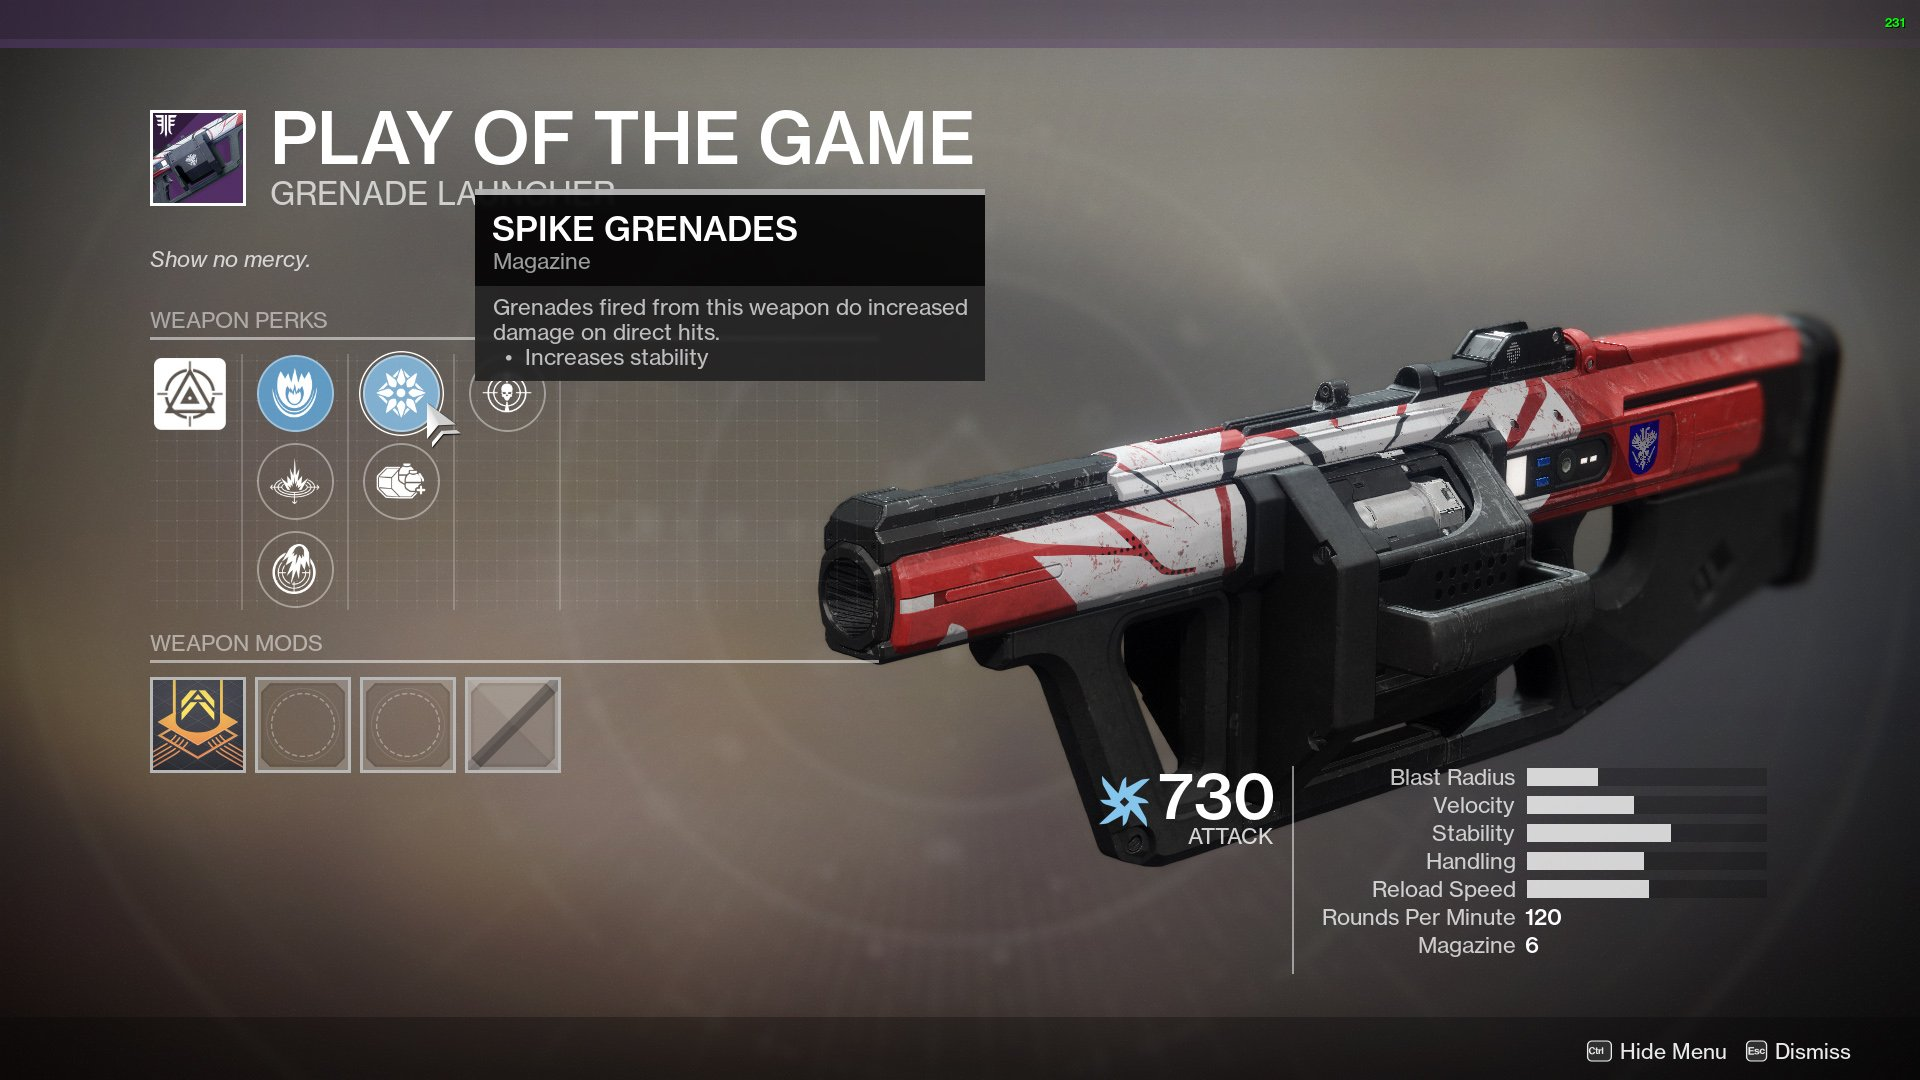 destiny 2 play of the game grenade launcher